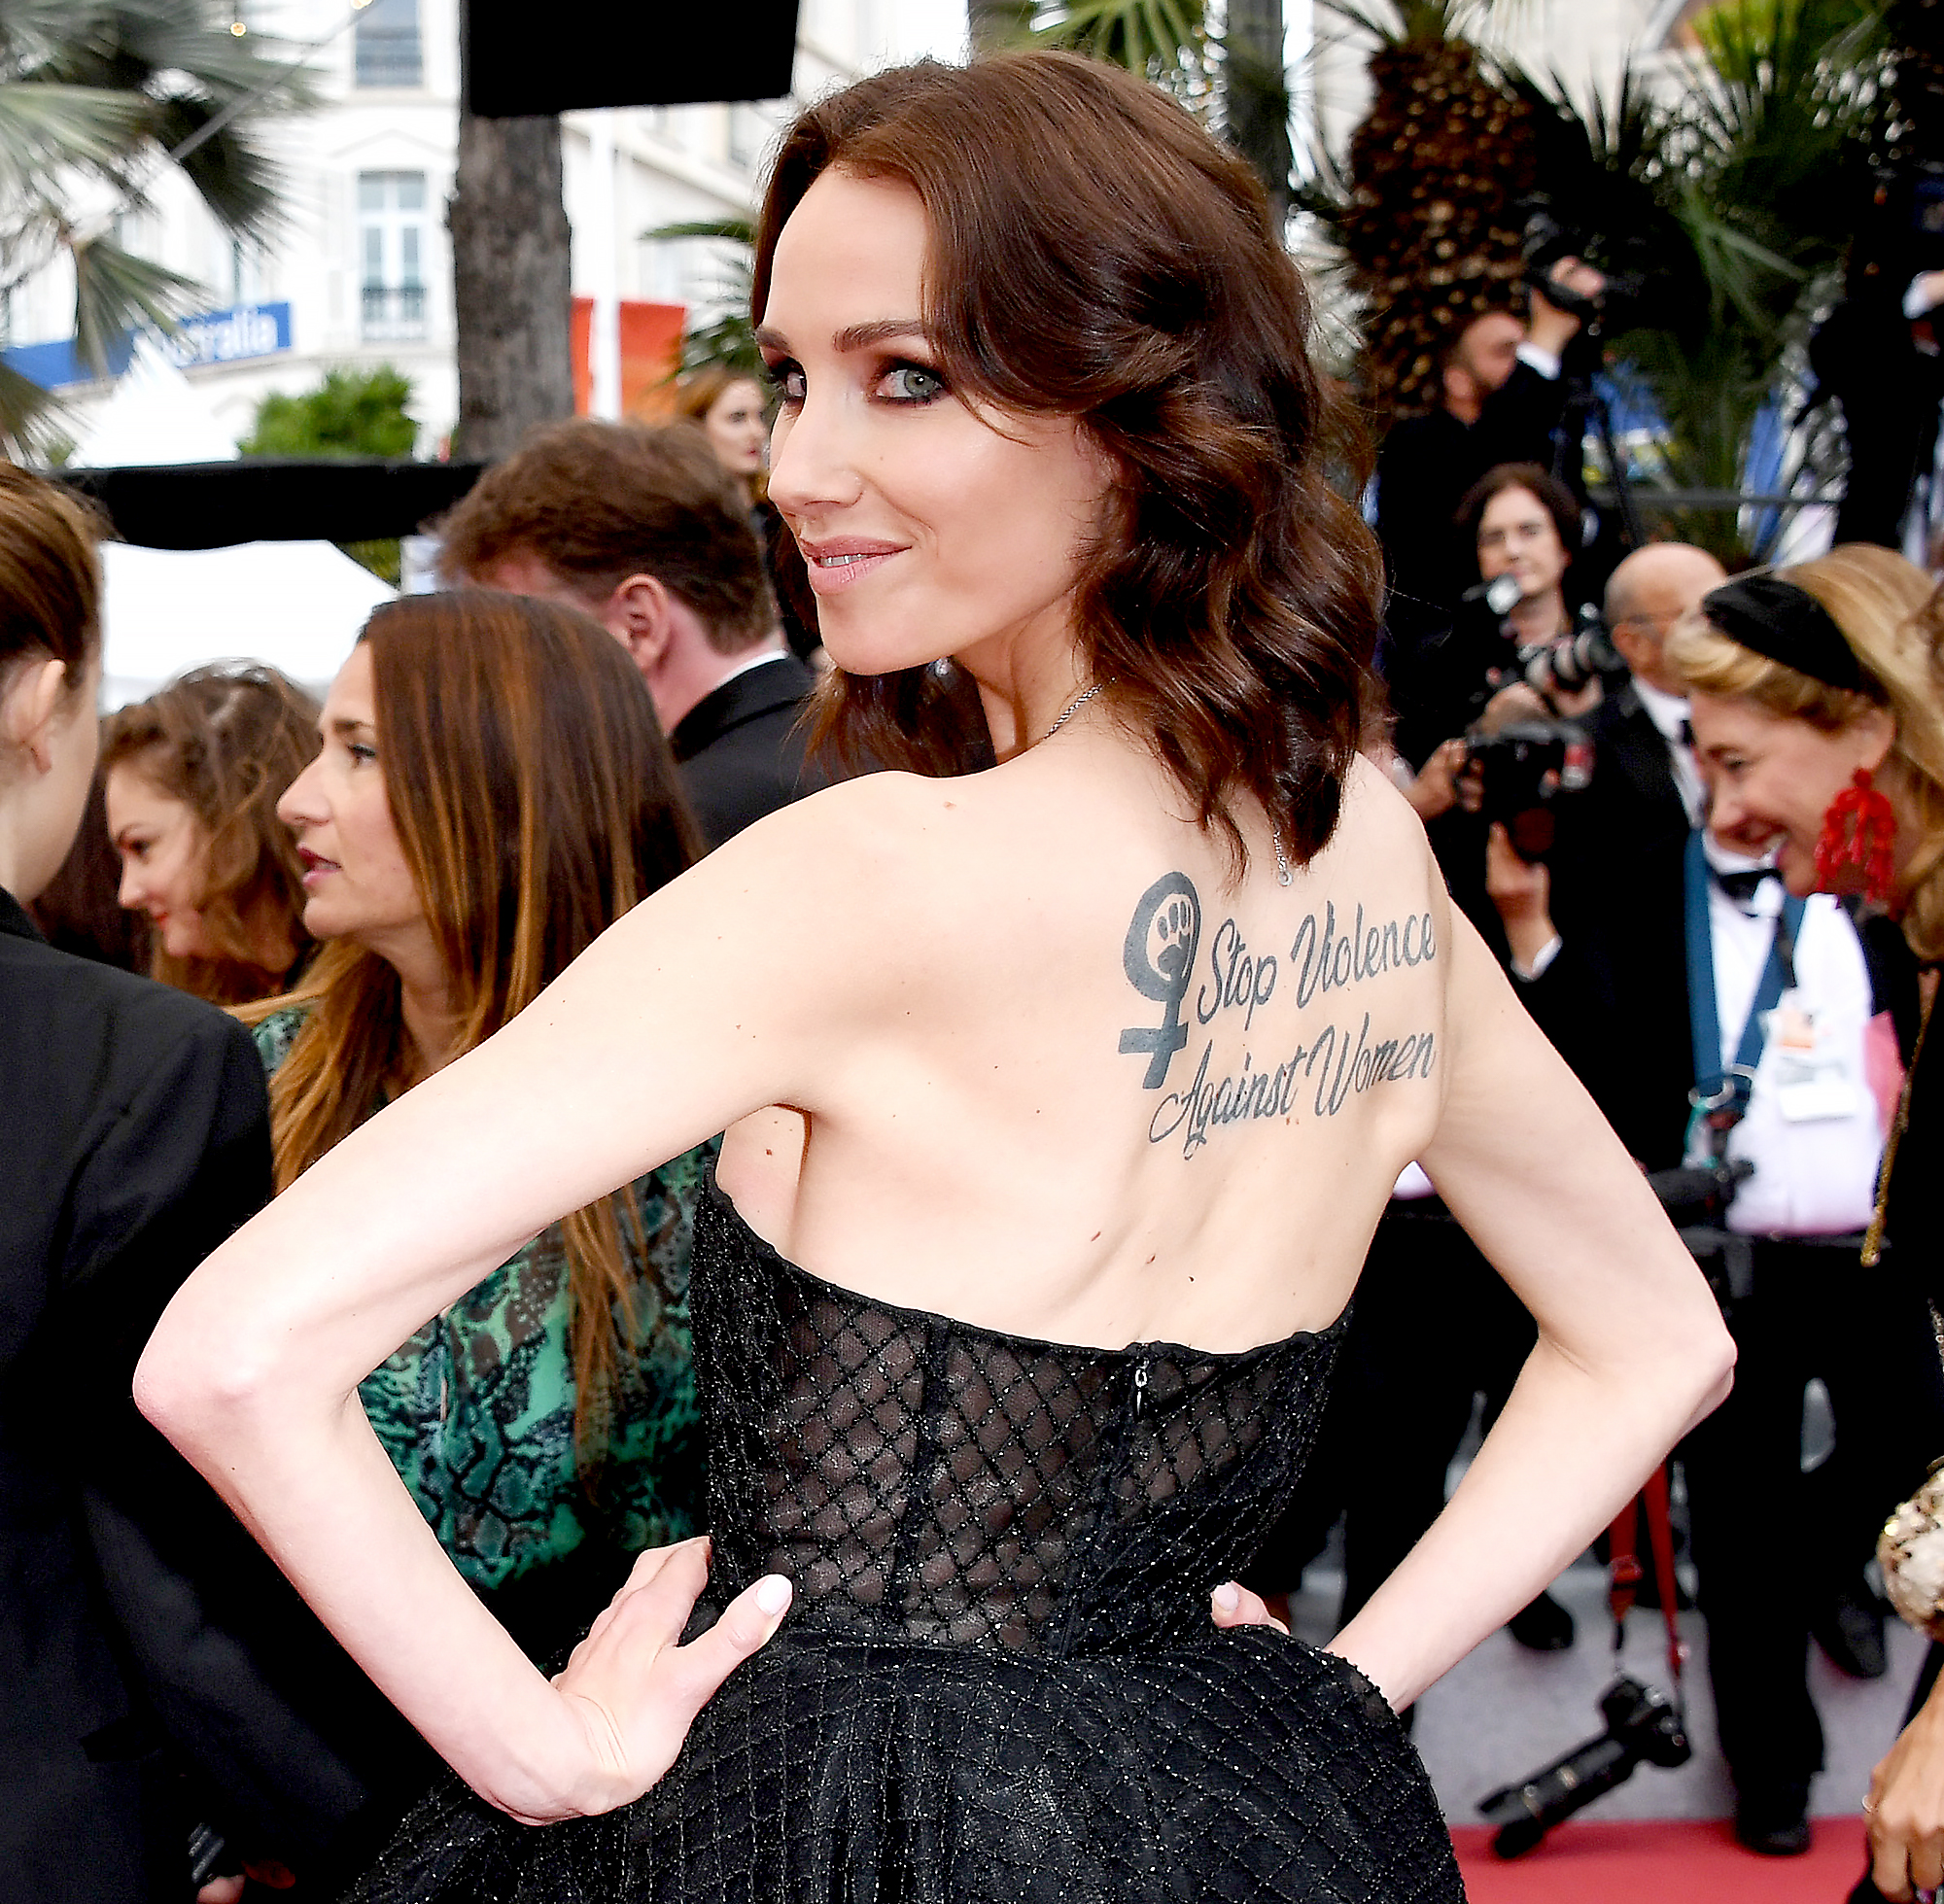 Why Everyone Is Talking About This Tattoo Spotted on the Cannes Carpet